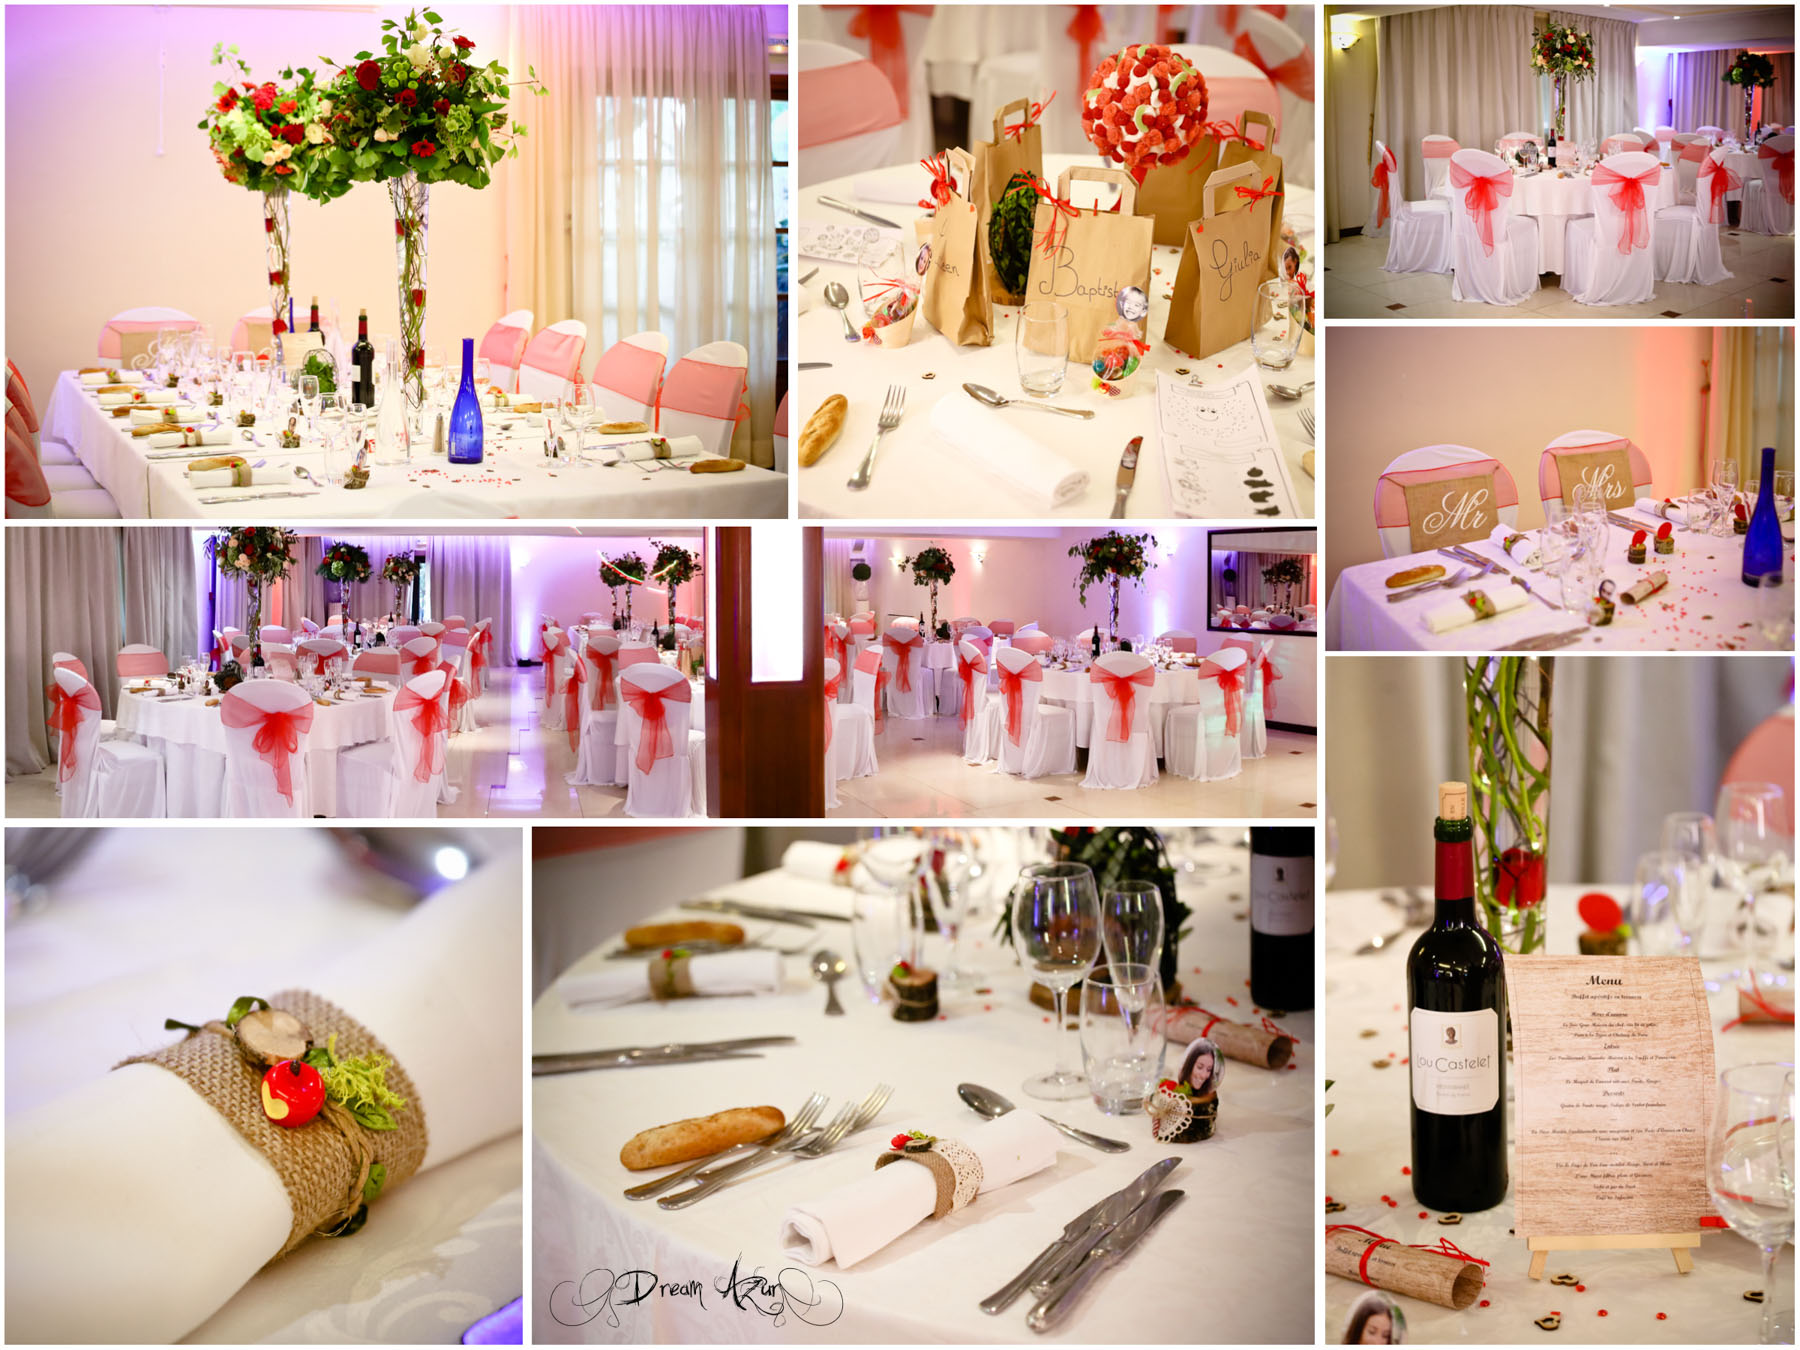 190824COMPO-Mariage-Cindy-et-Anthony-70